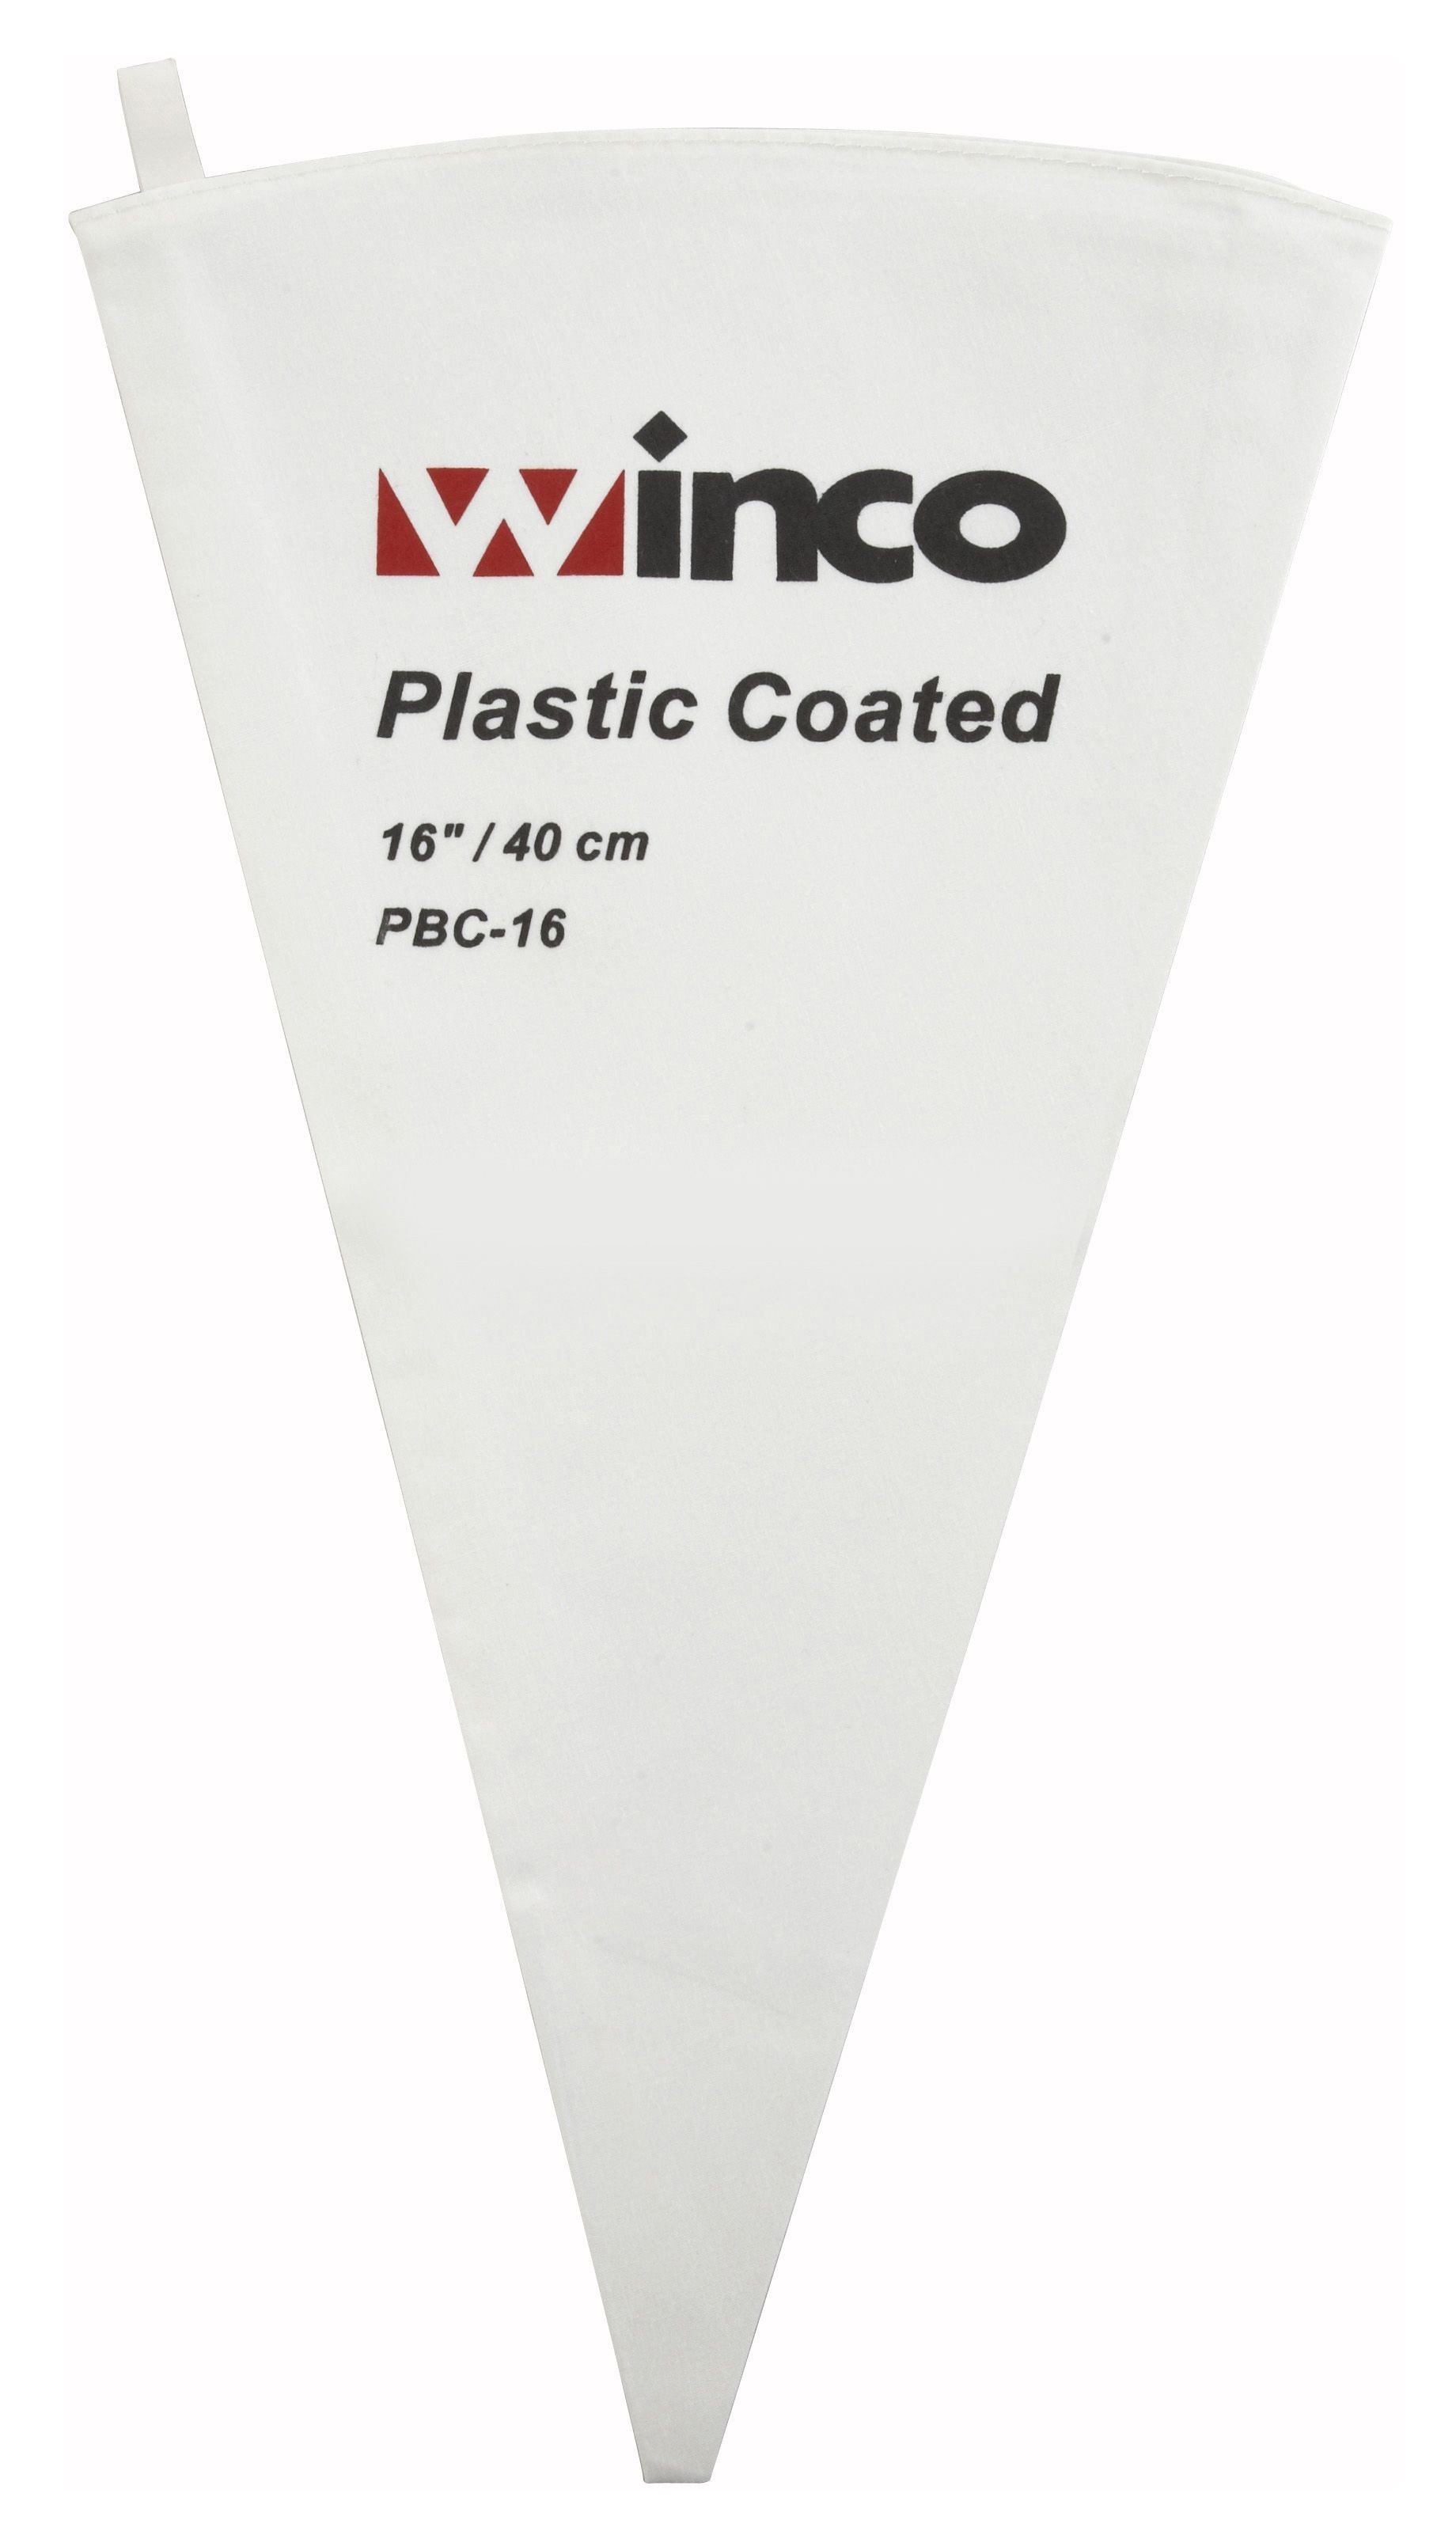 Winco PBC-16 Cotton Pastry Bag with Inner Plastic Coating, 16""